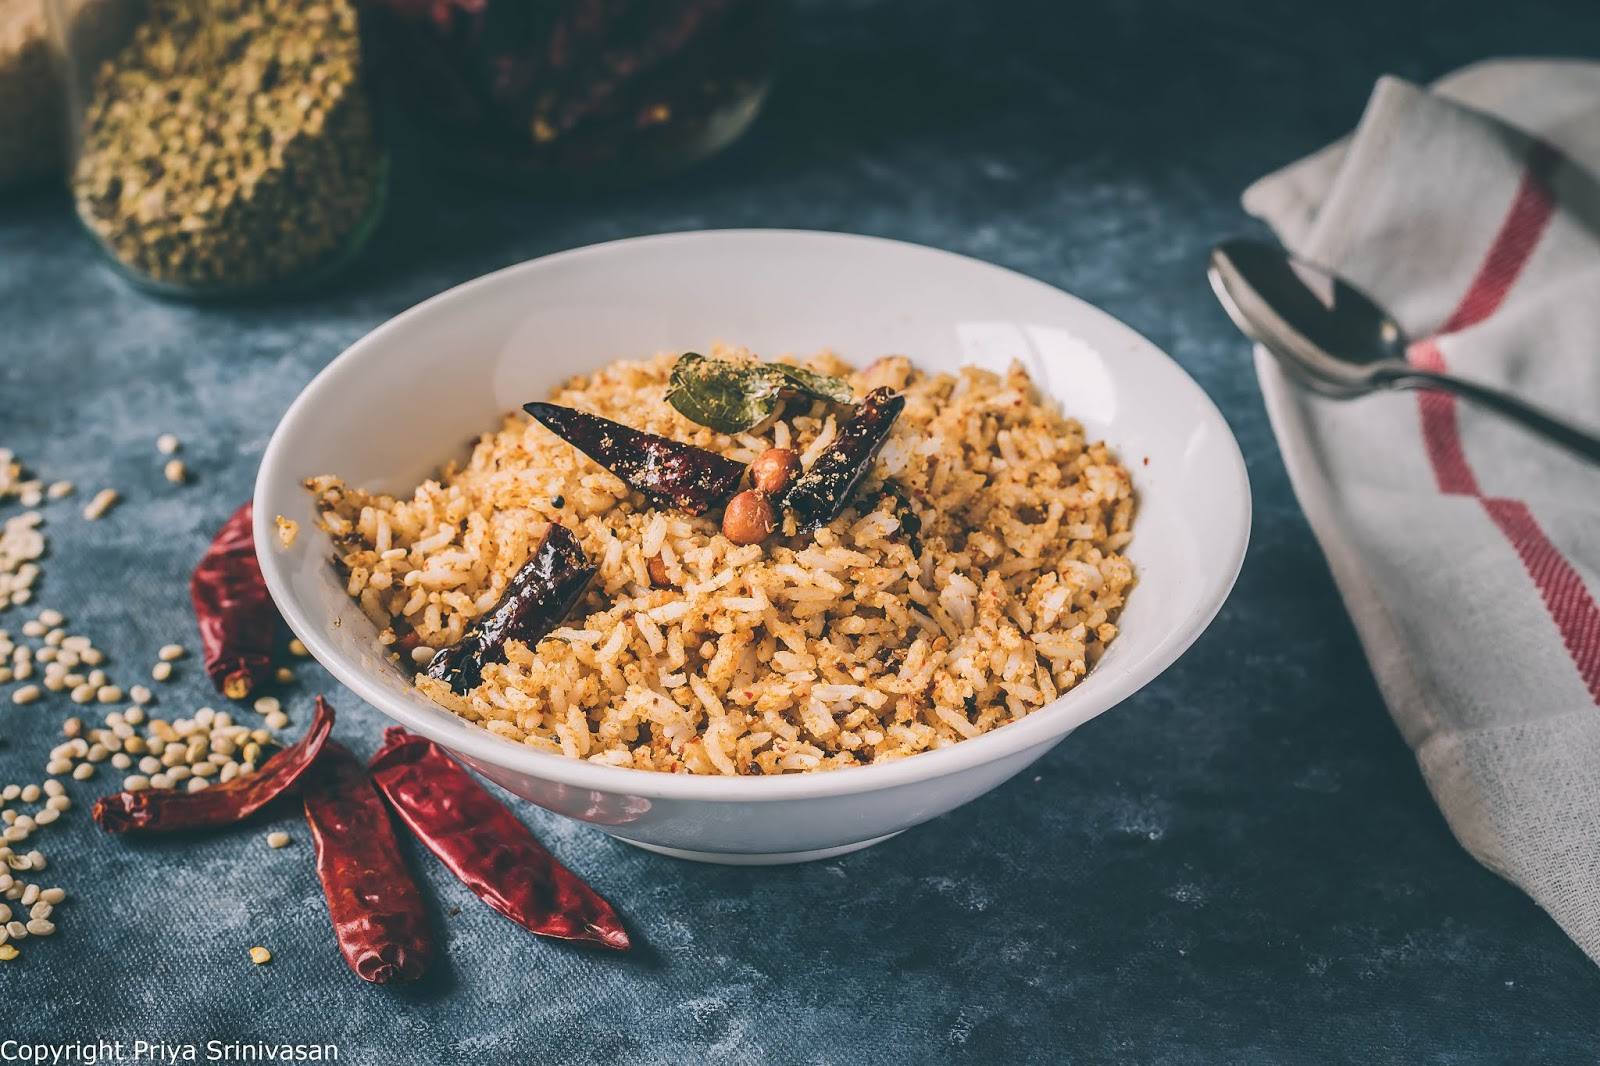 Mixed rice lunch recipe